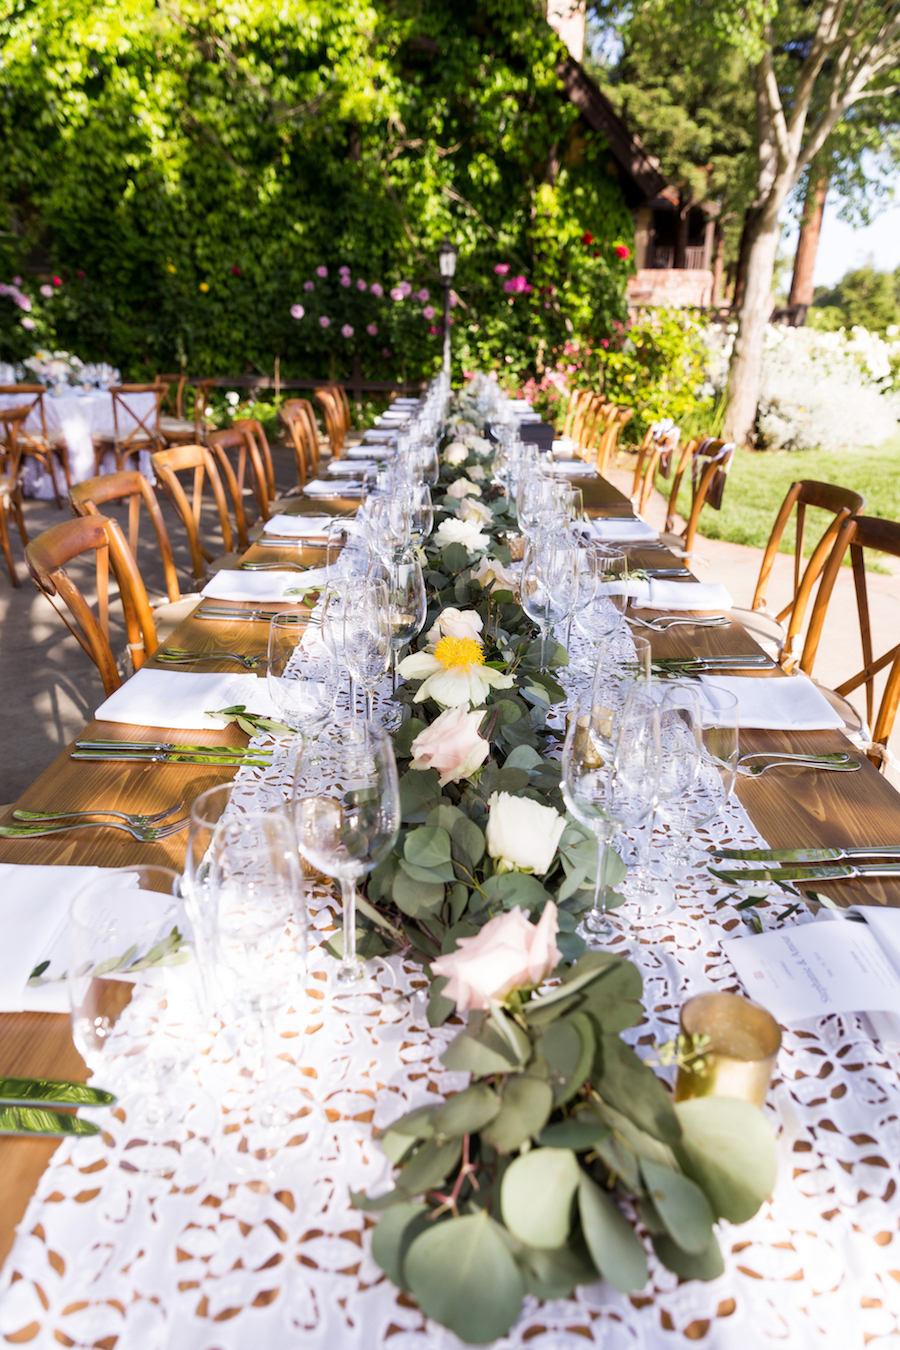 Chic and Organic Outdoor Wedding at Harvest Inn111.jpg